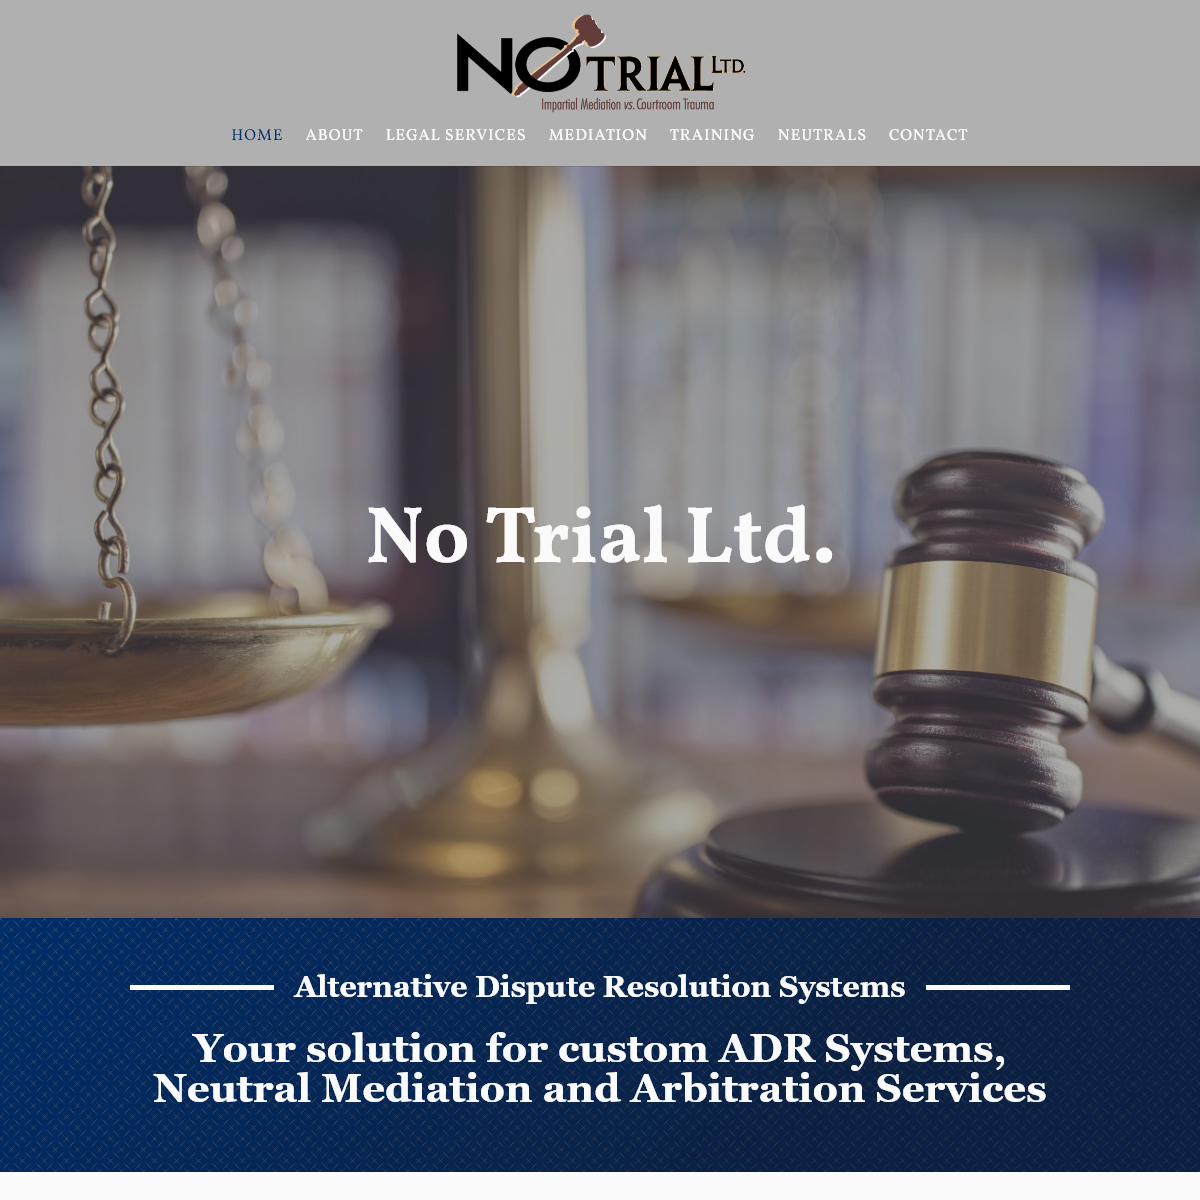 Neutral Mediation, ADR Systems, and Arbitration services •